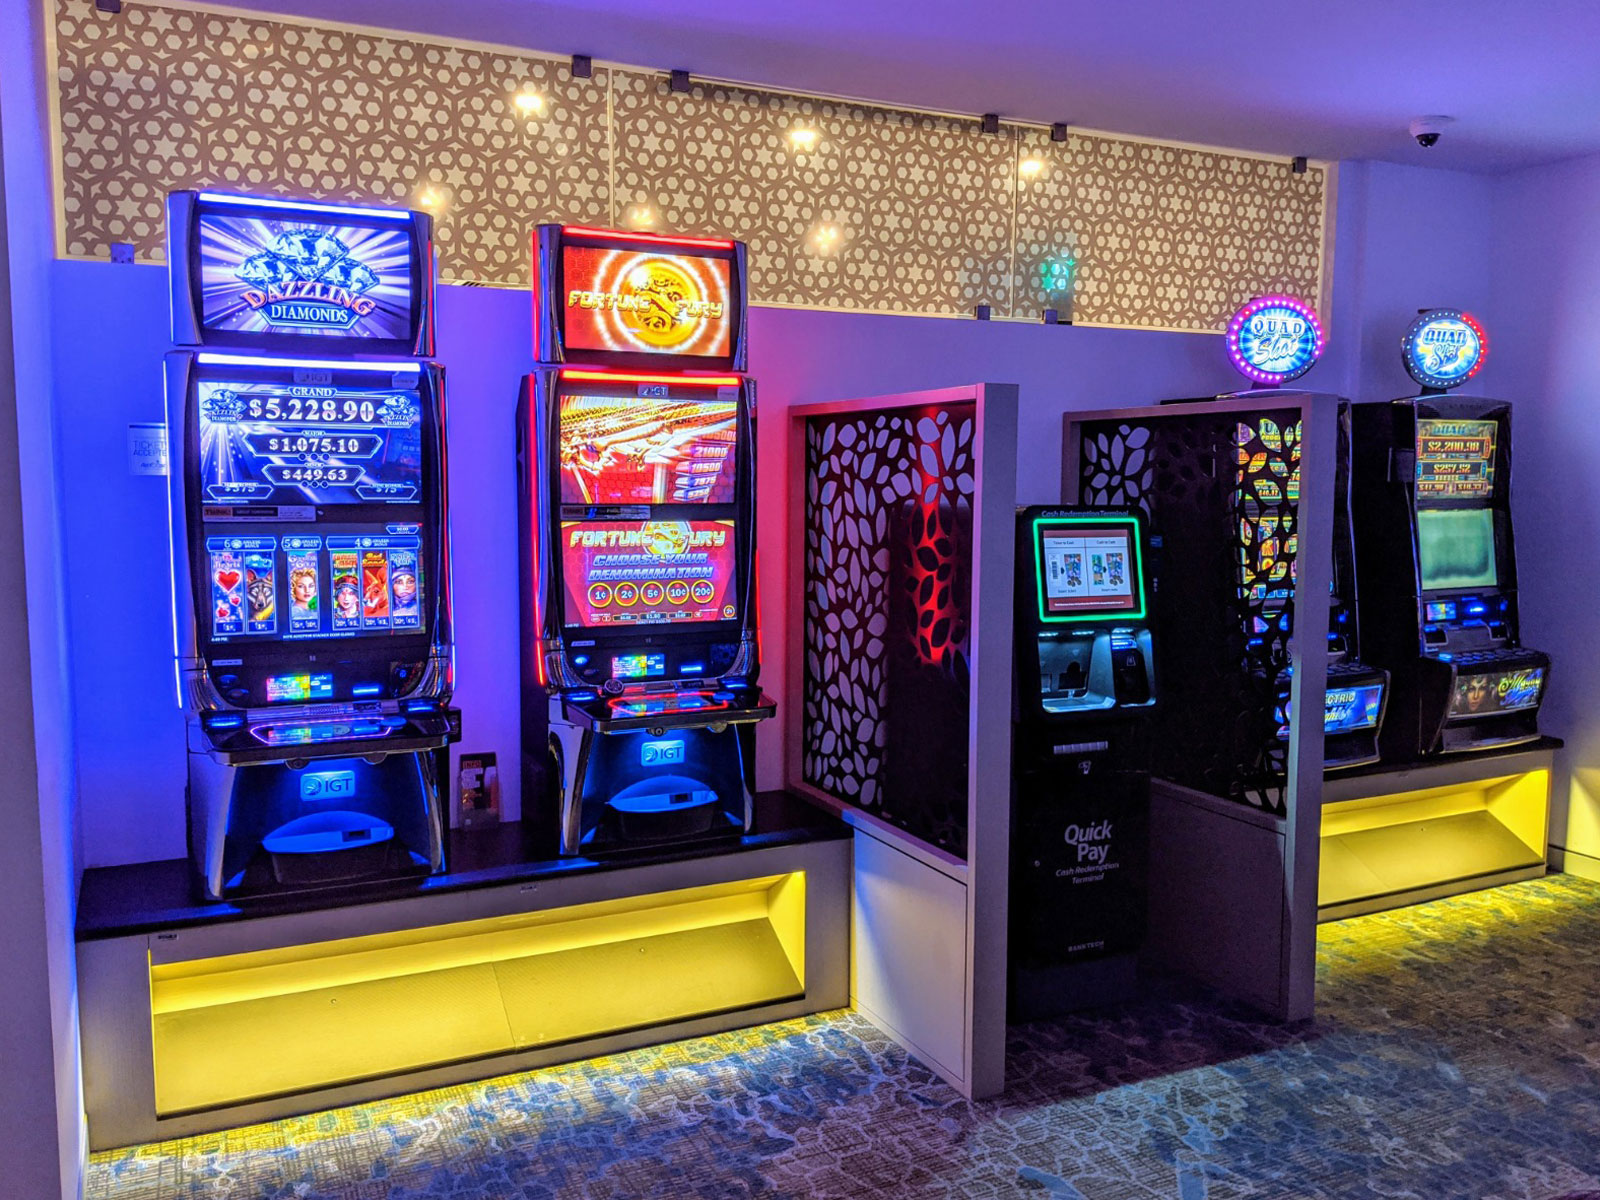 Wollongong Golf Club Gaming Room new design and layout